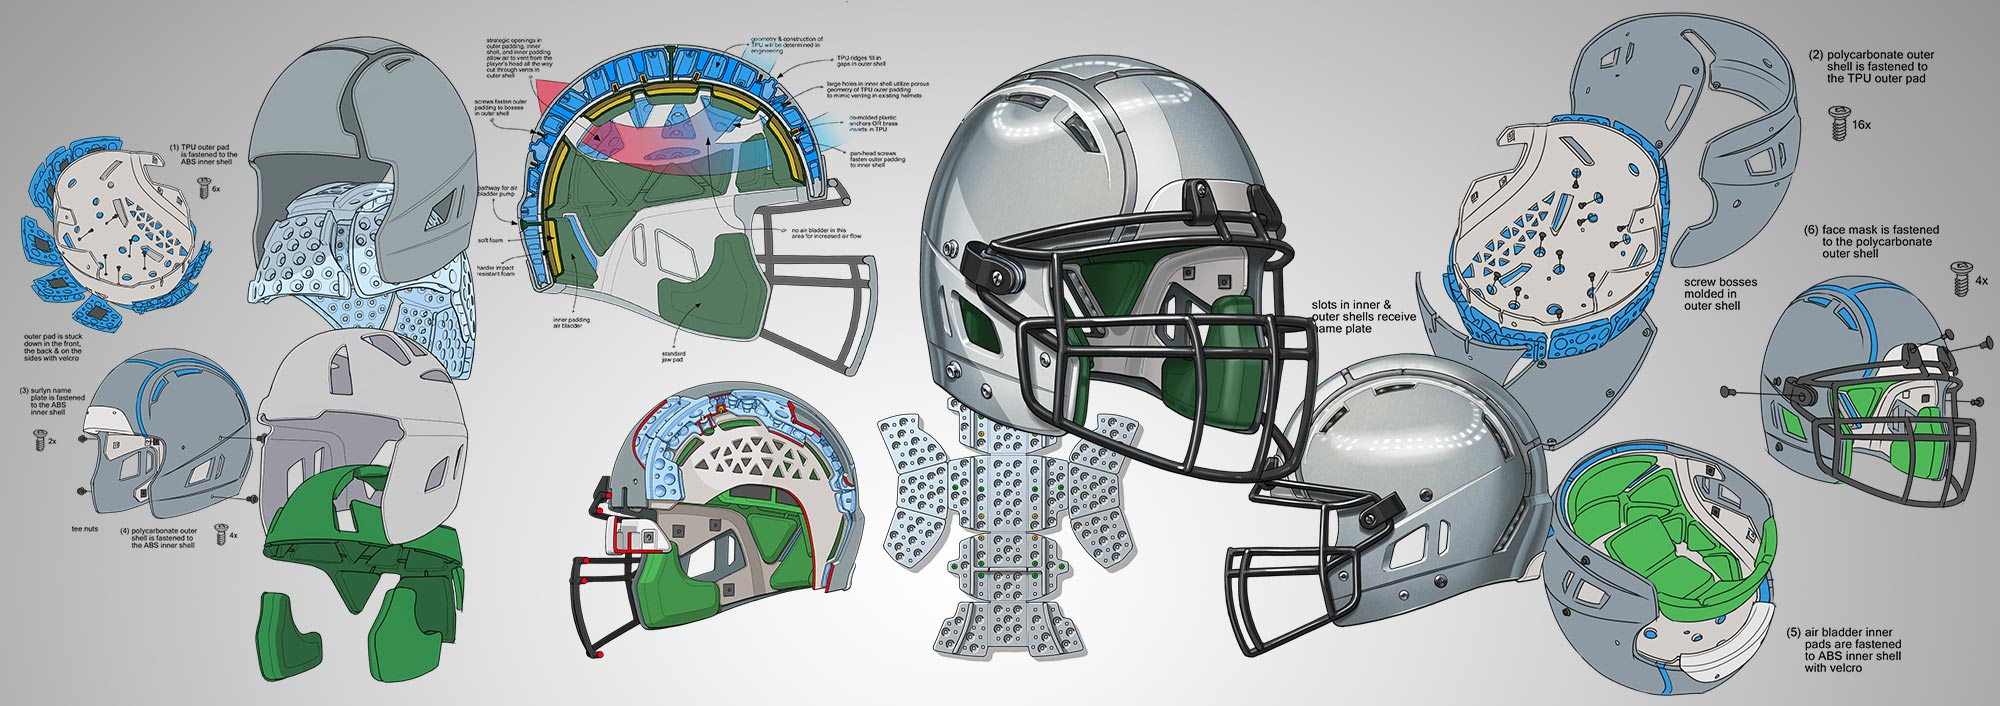 1_SchuttF7_Design